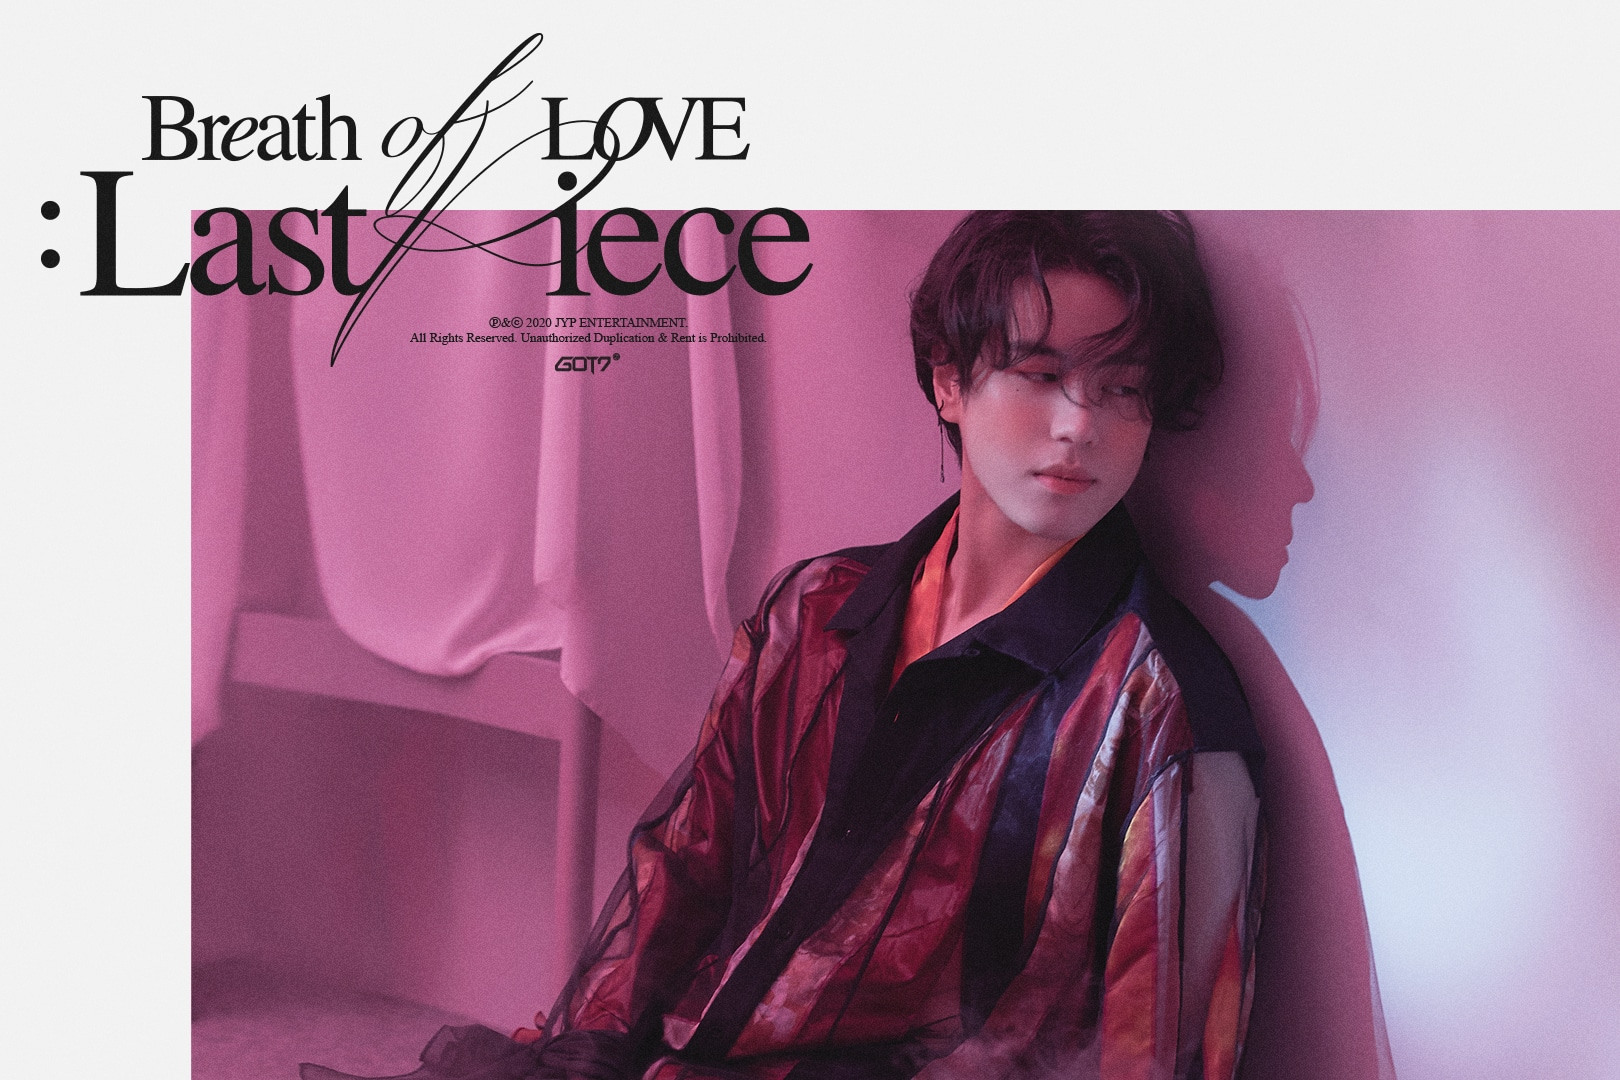 Yugyeom GOT7 Tampil Berkarisma Dalam Teaser Album 'Breath of Love : Last Piece'